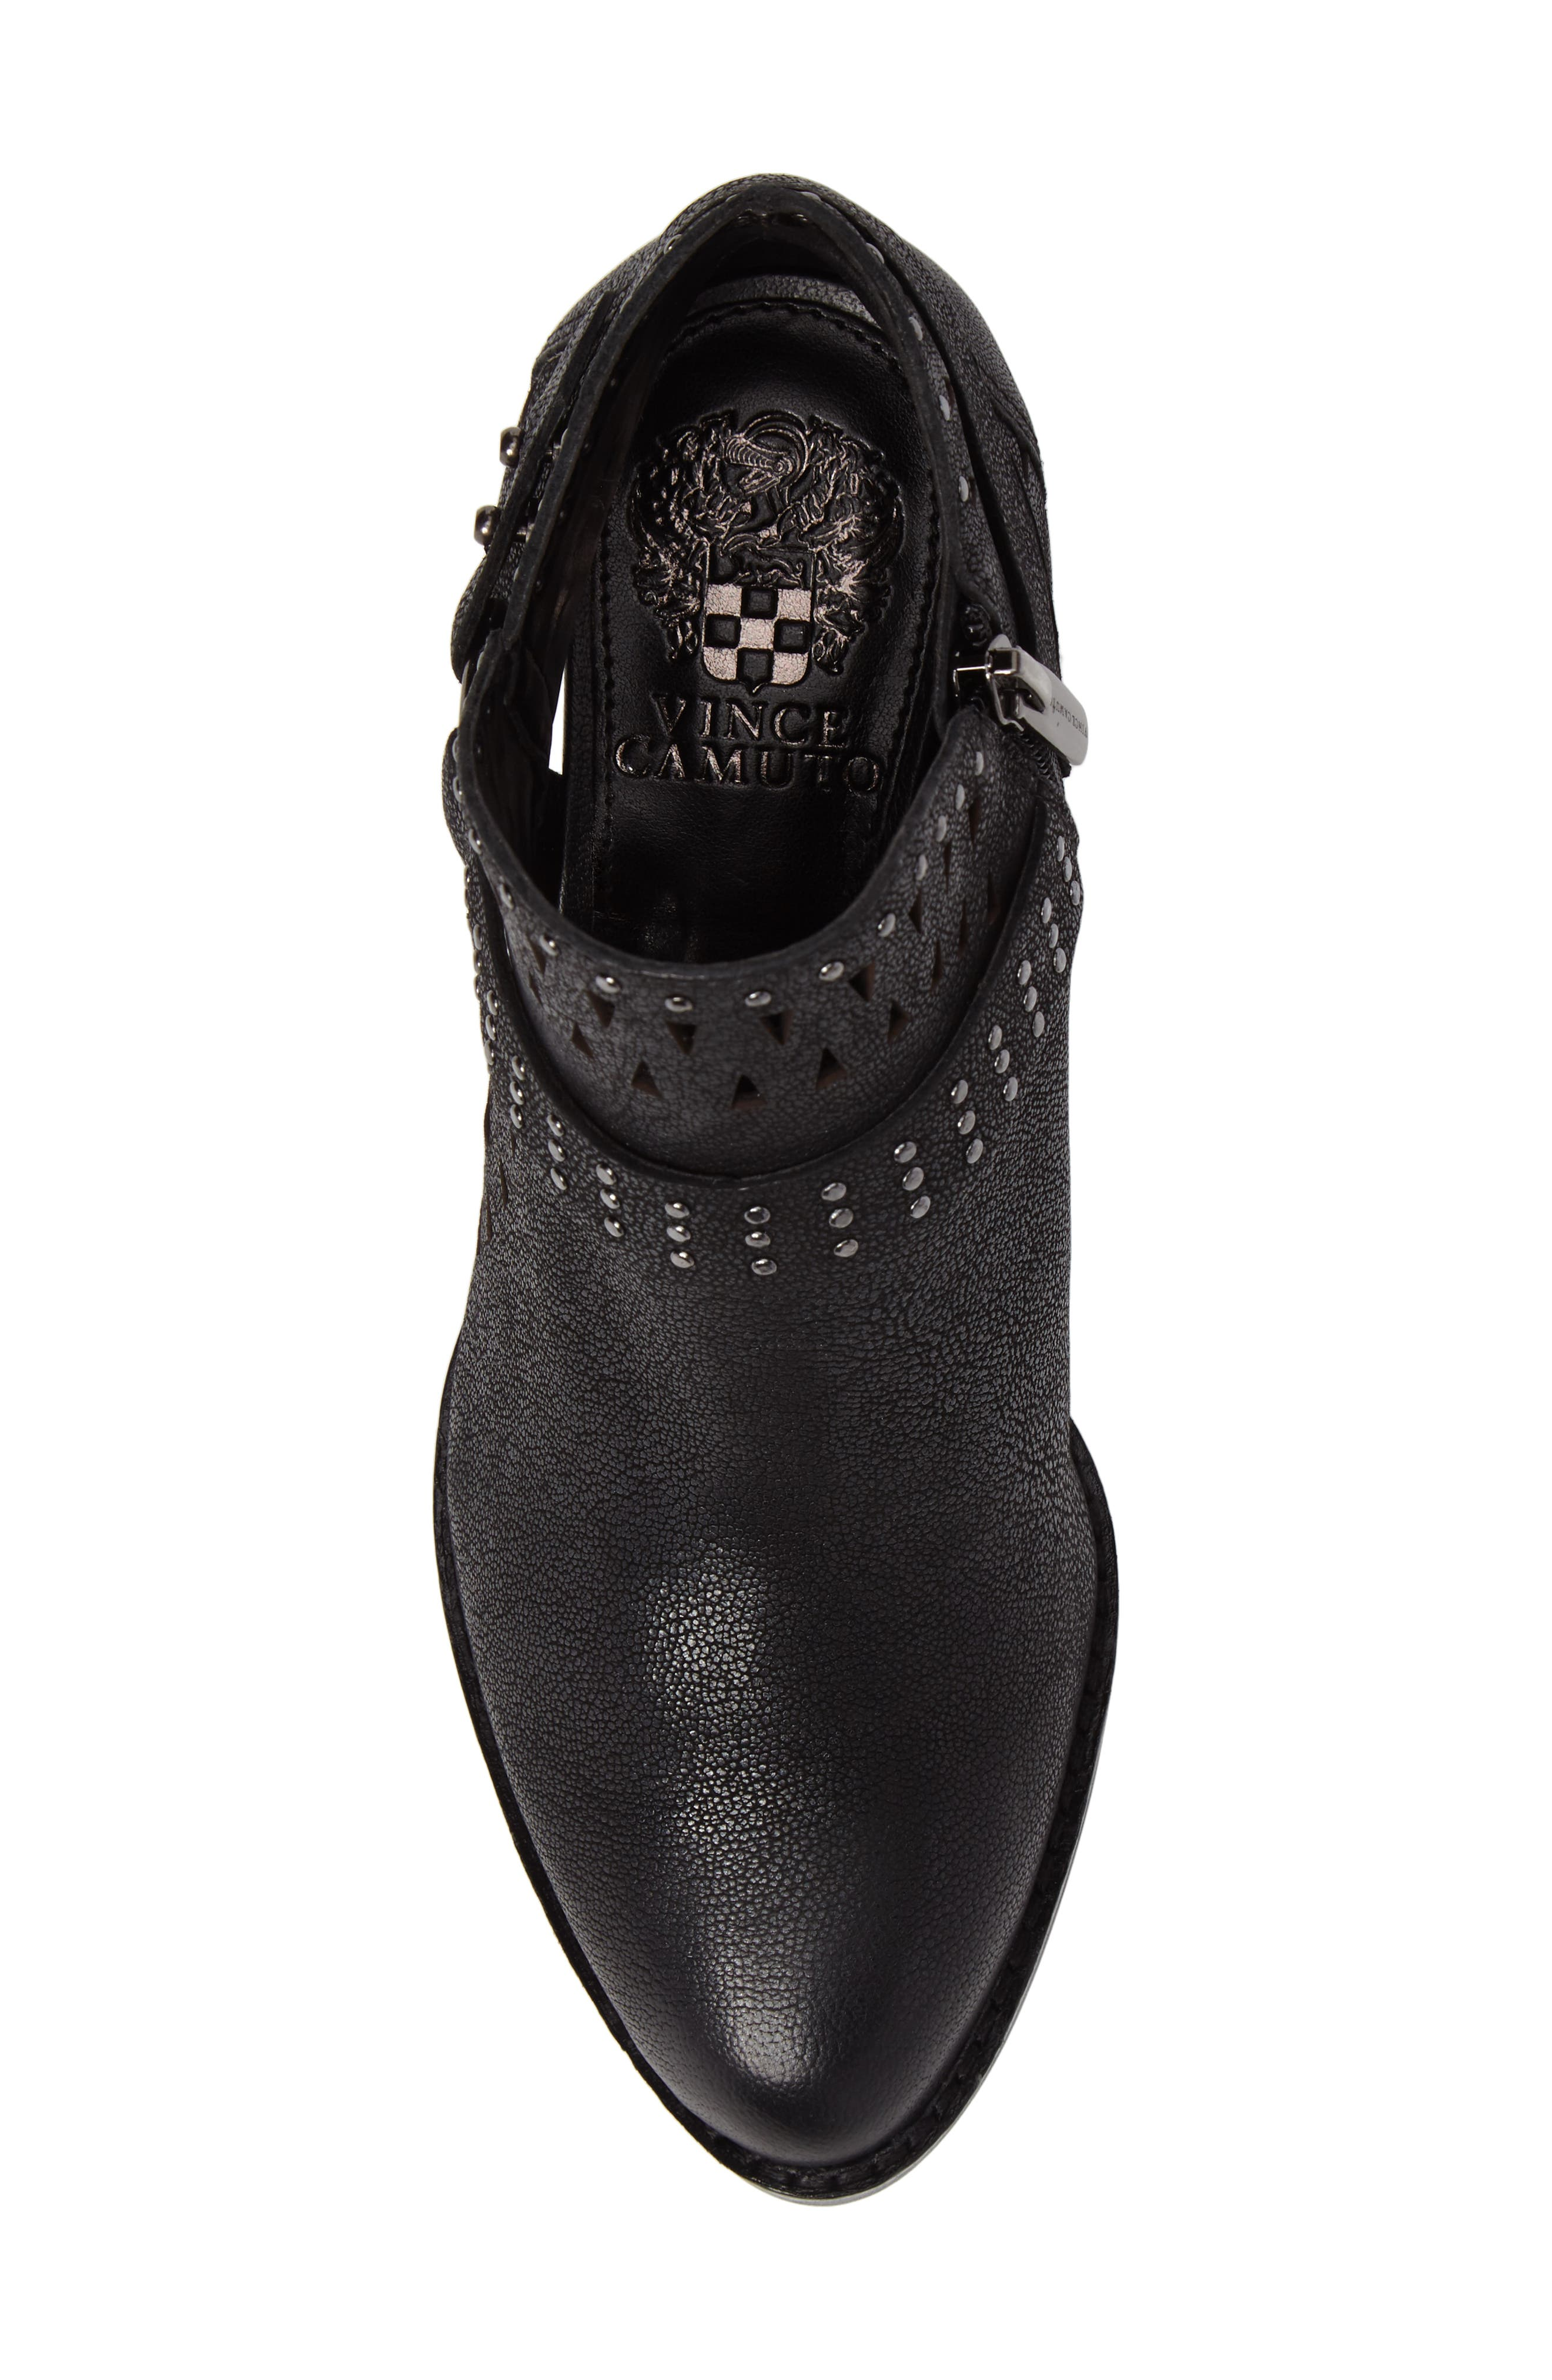 Calley Strappy Studded Bootie,                             Alternate thumbnail 5, color,                             001